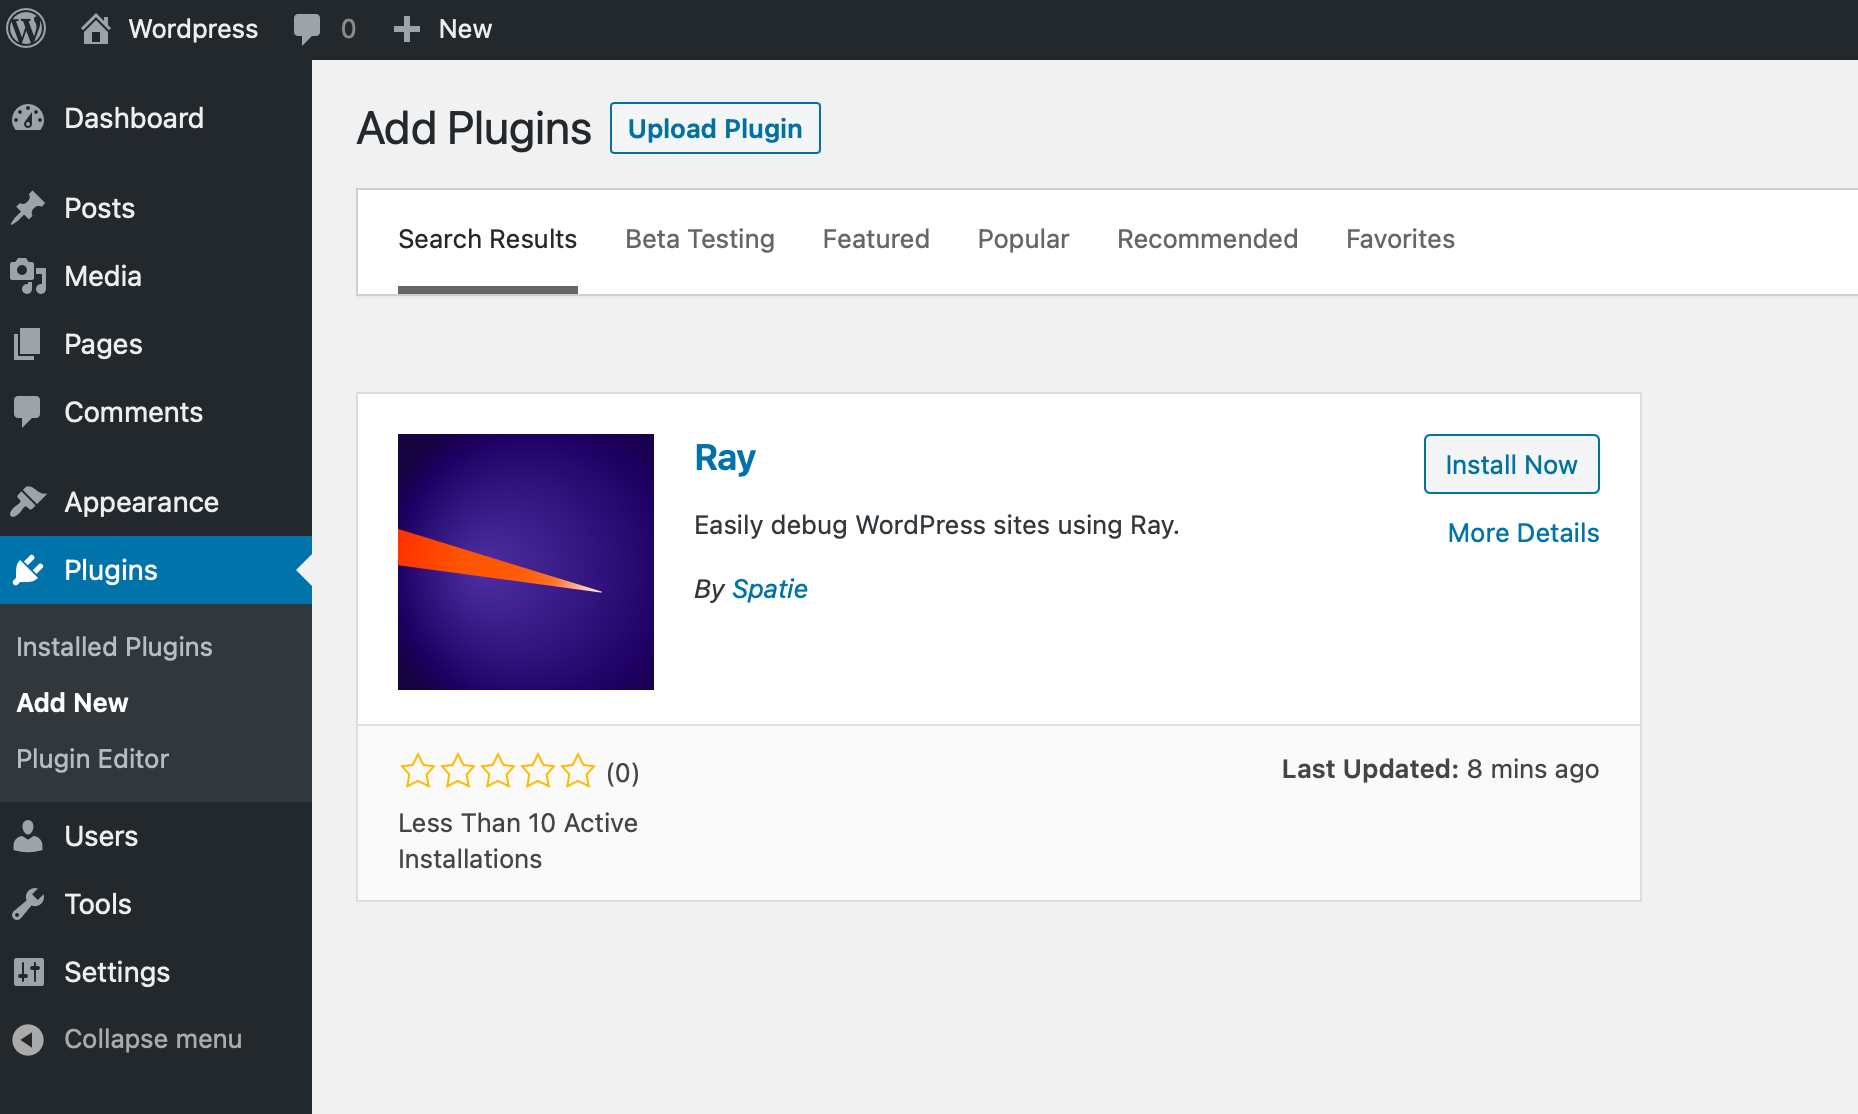 Ray loves WordPress